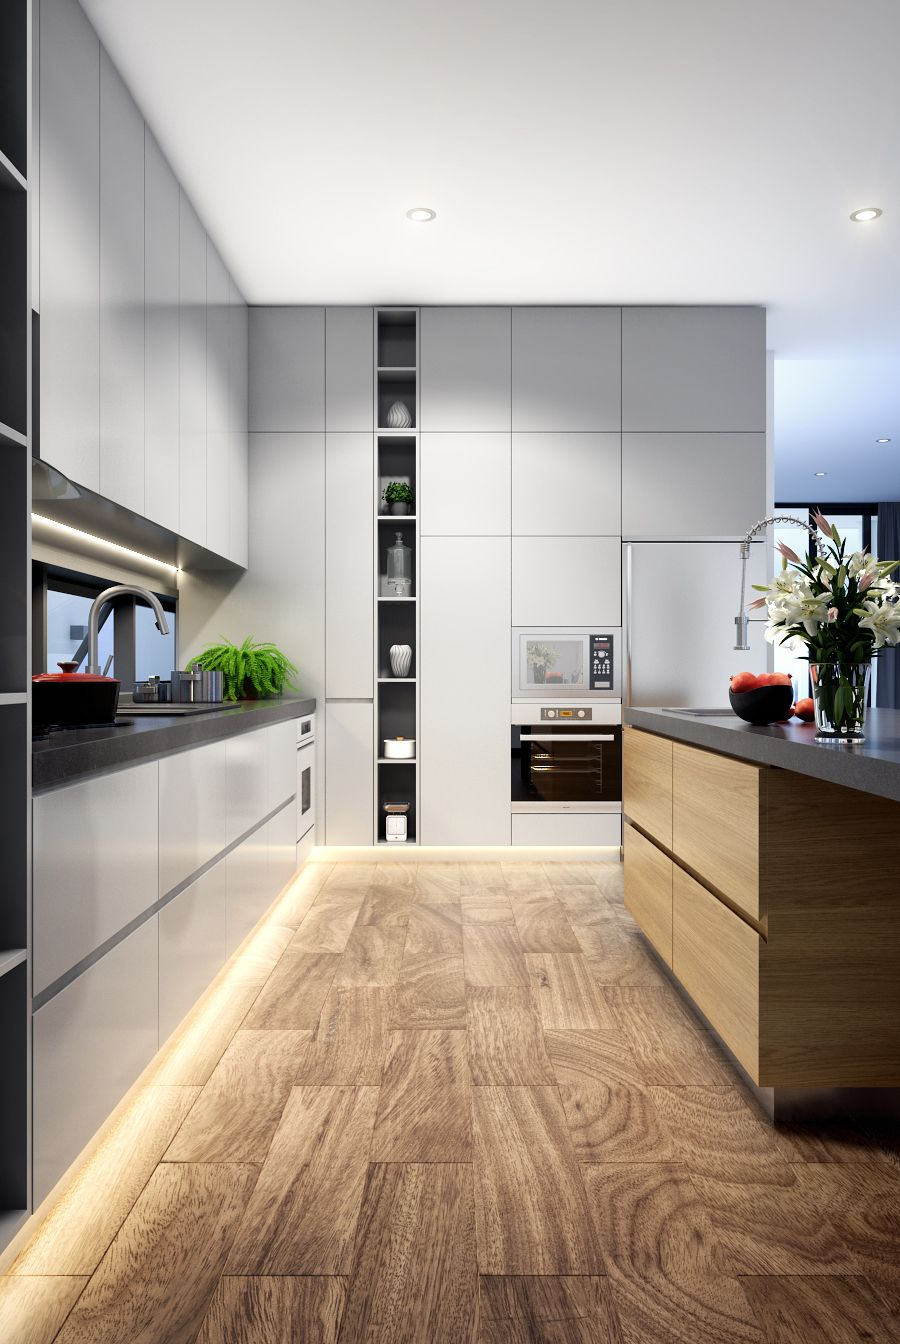 Color Combo Inspiration Wood Interiors With Grey Accents Kitchen Design Interior Design Kitchen Kitchen Remodel